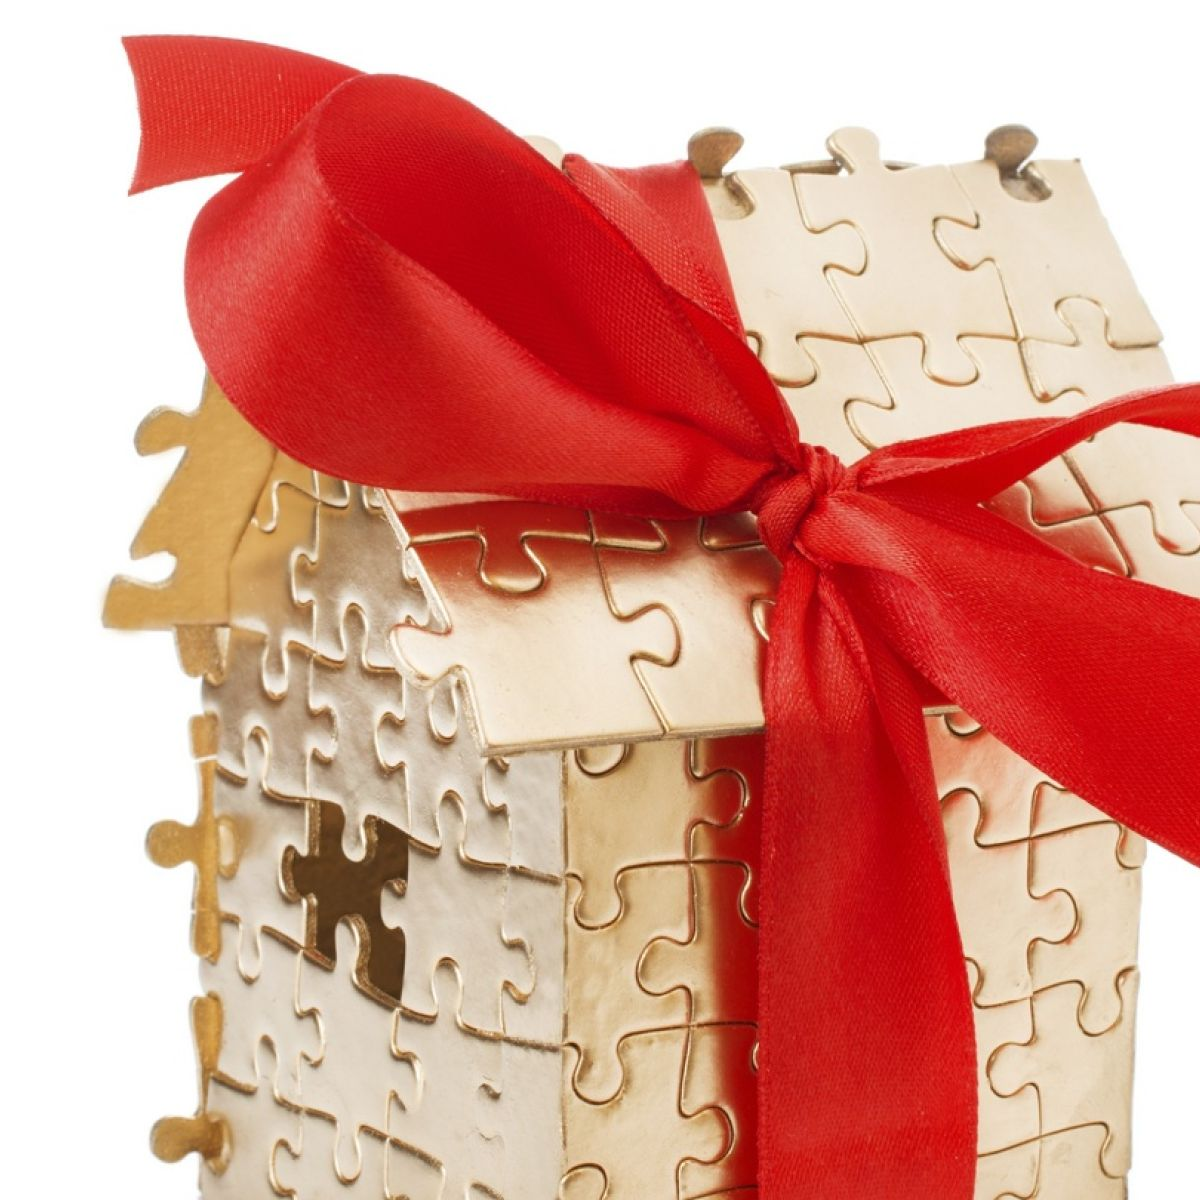 If you have a gift for an apartment, the tax is not paid in all cases